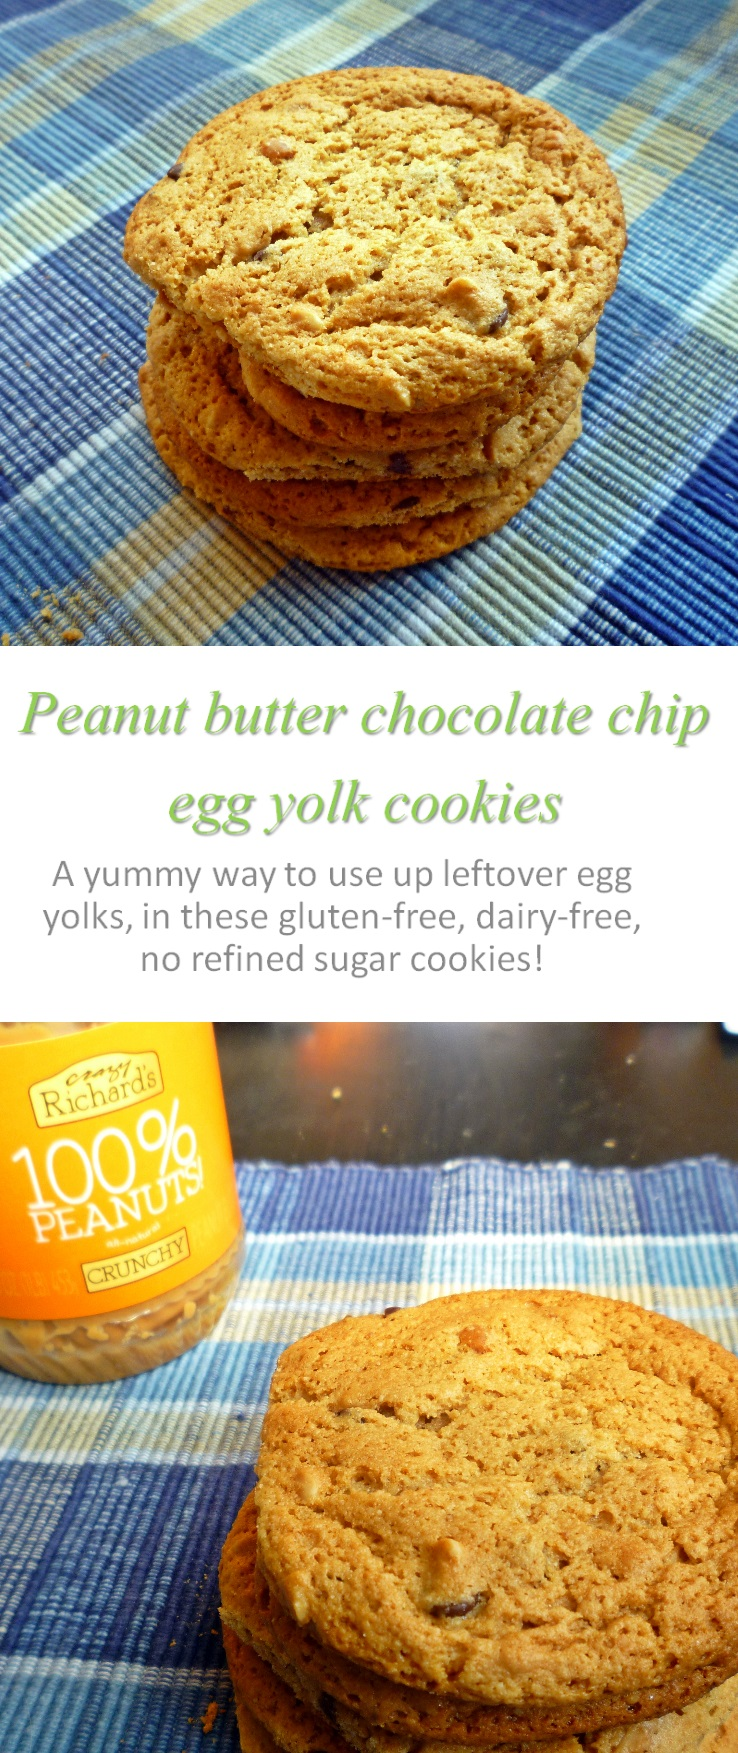 A tasty way to use up leftover egg yolks - these peanut butter egg yolk chocolate chip cookies are seriously addictive! #peanutbutter